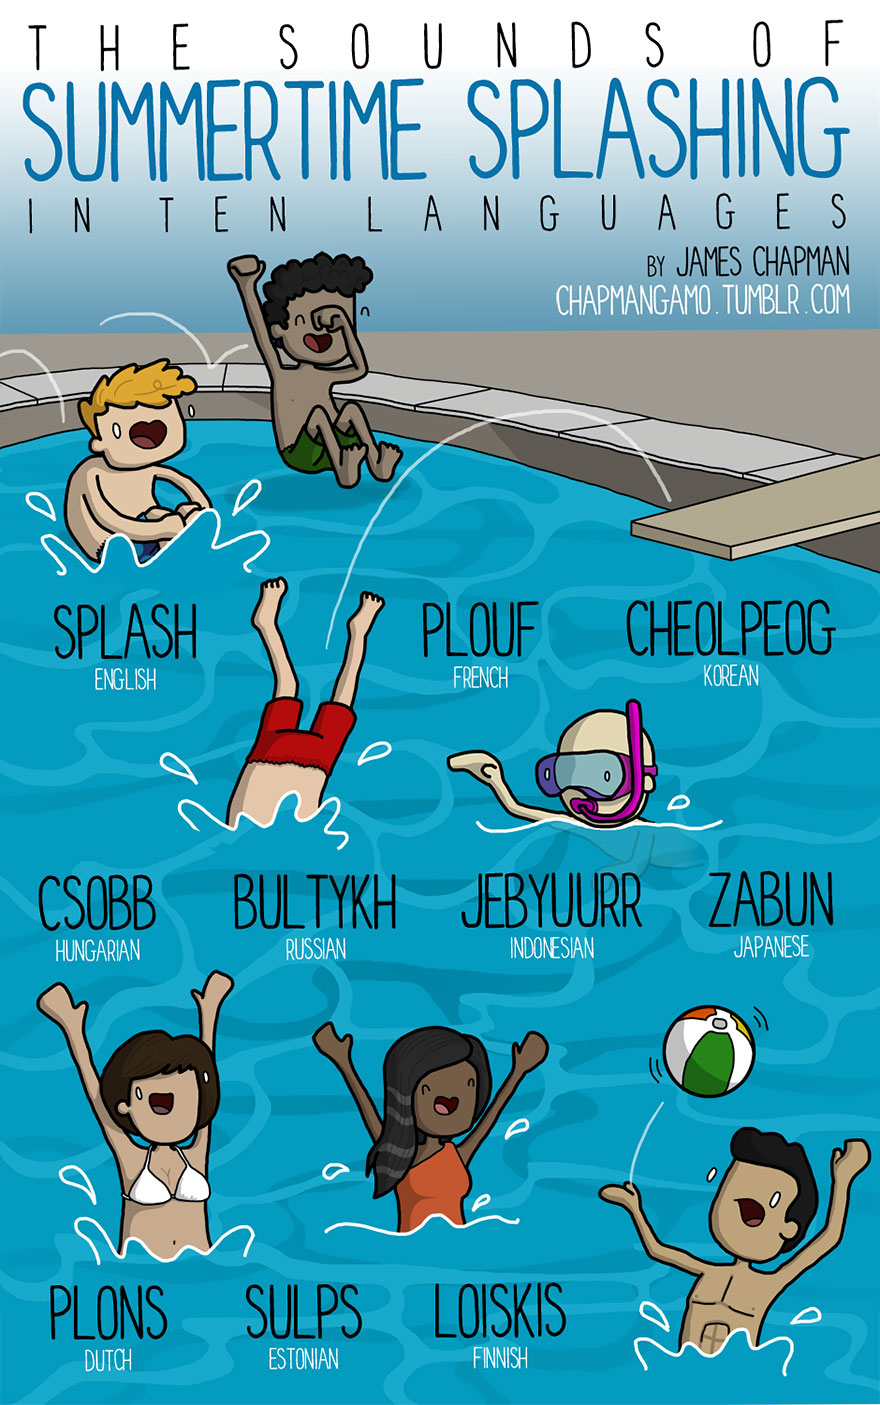 different-languages-expressions-illustrations-james-chapman-15